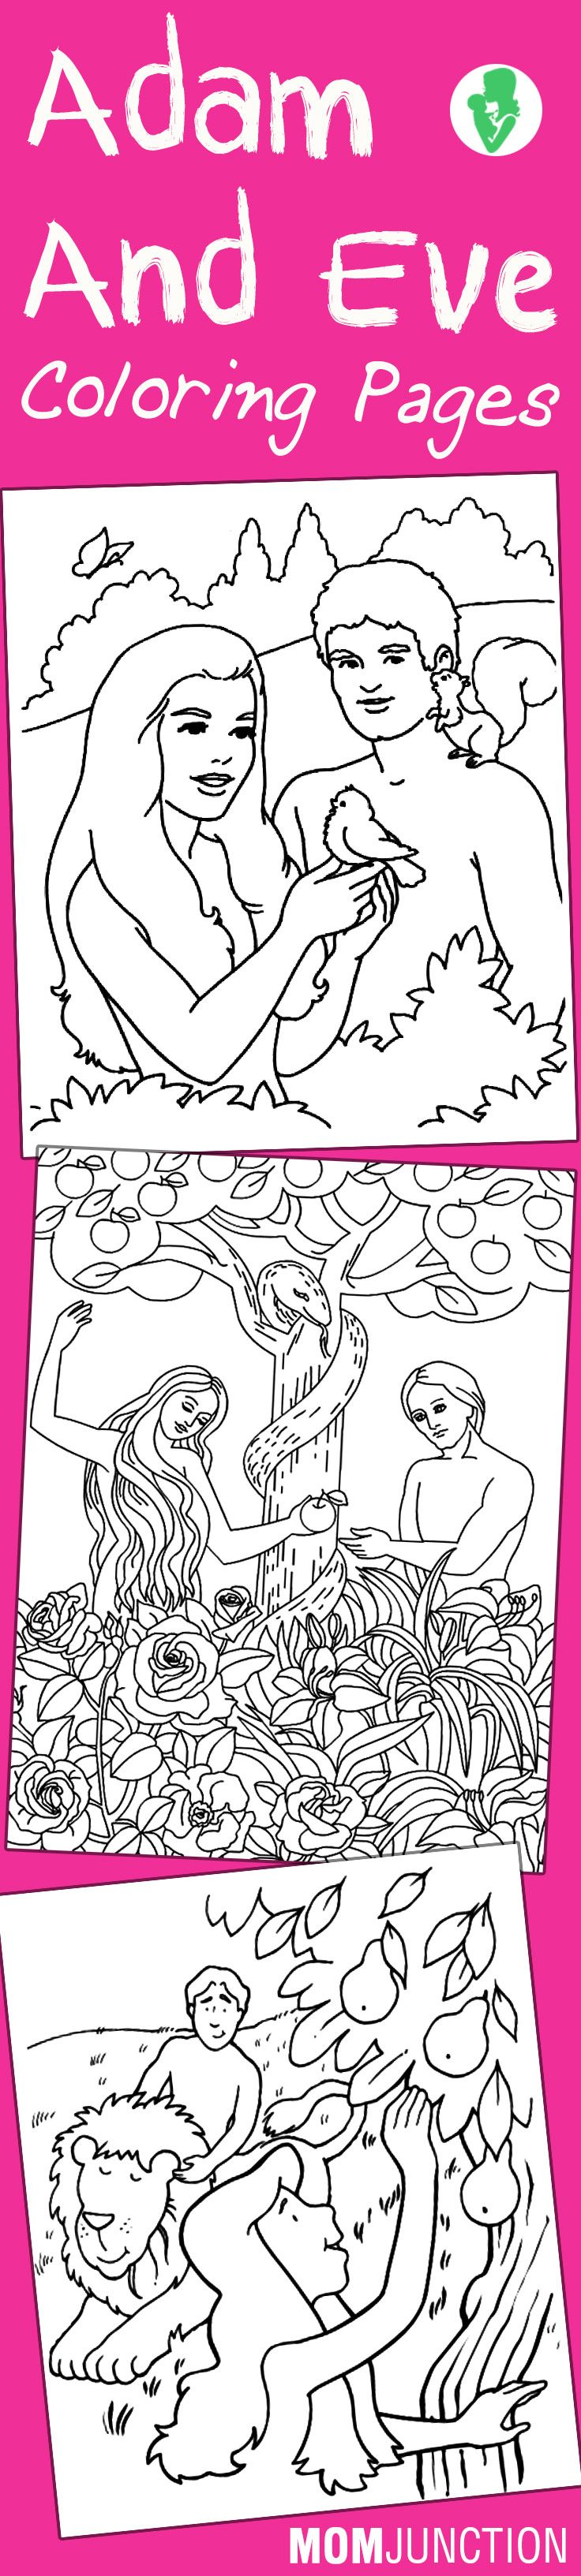 top 25 freeprintable adam and eve coloring pages online sunday